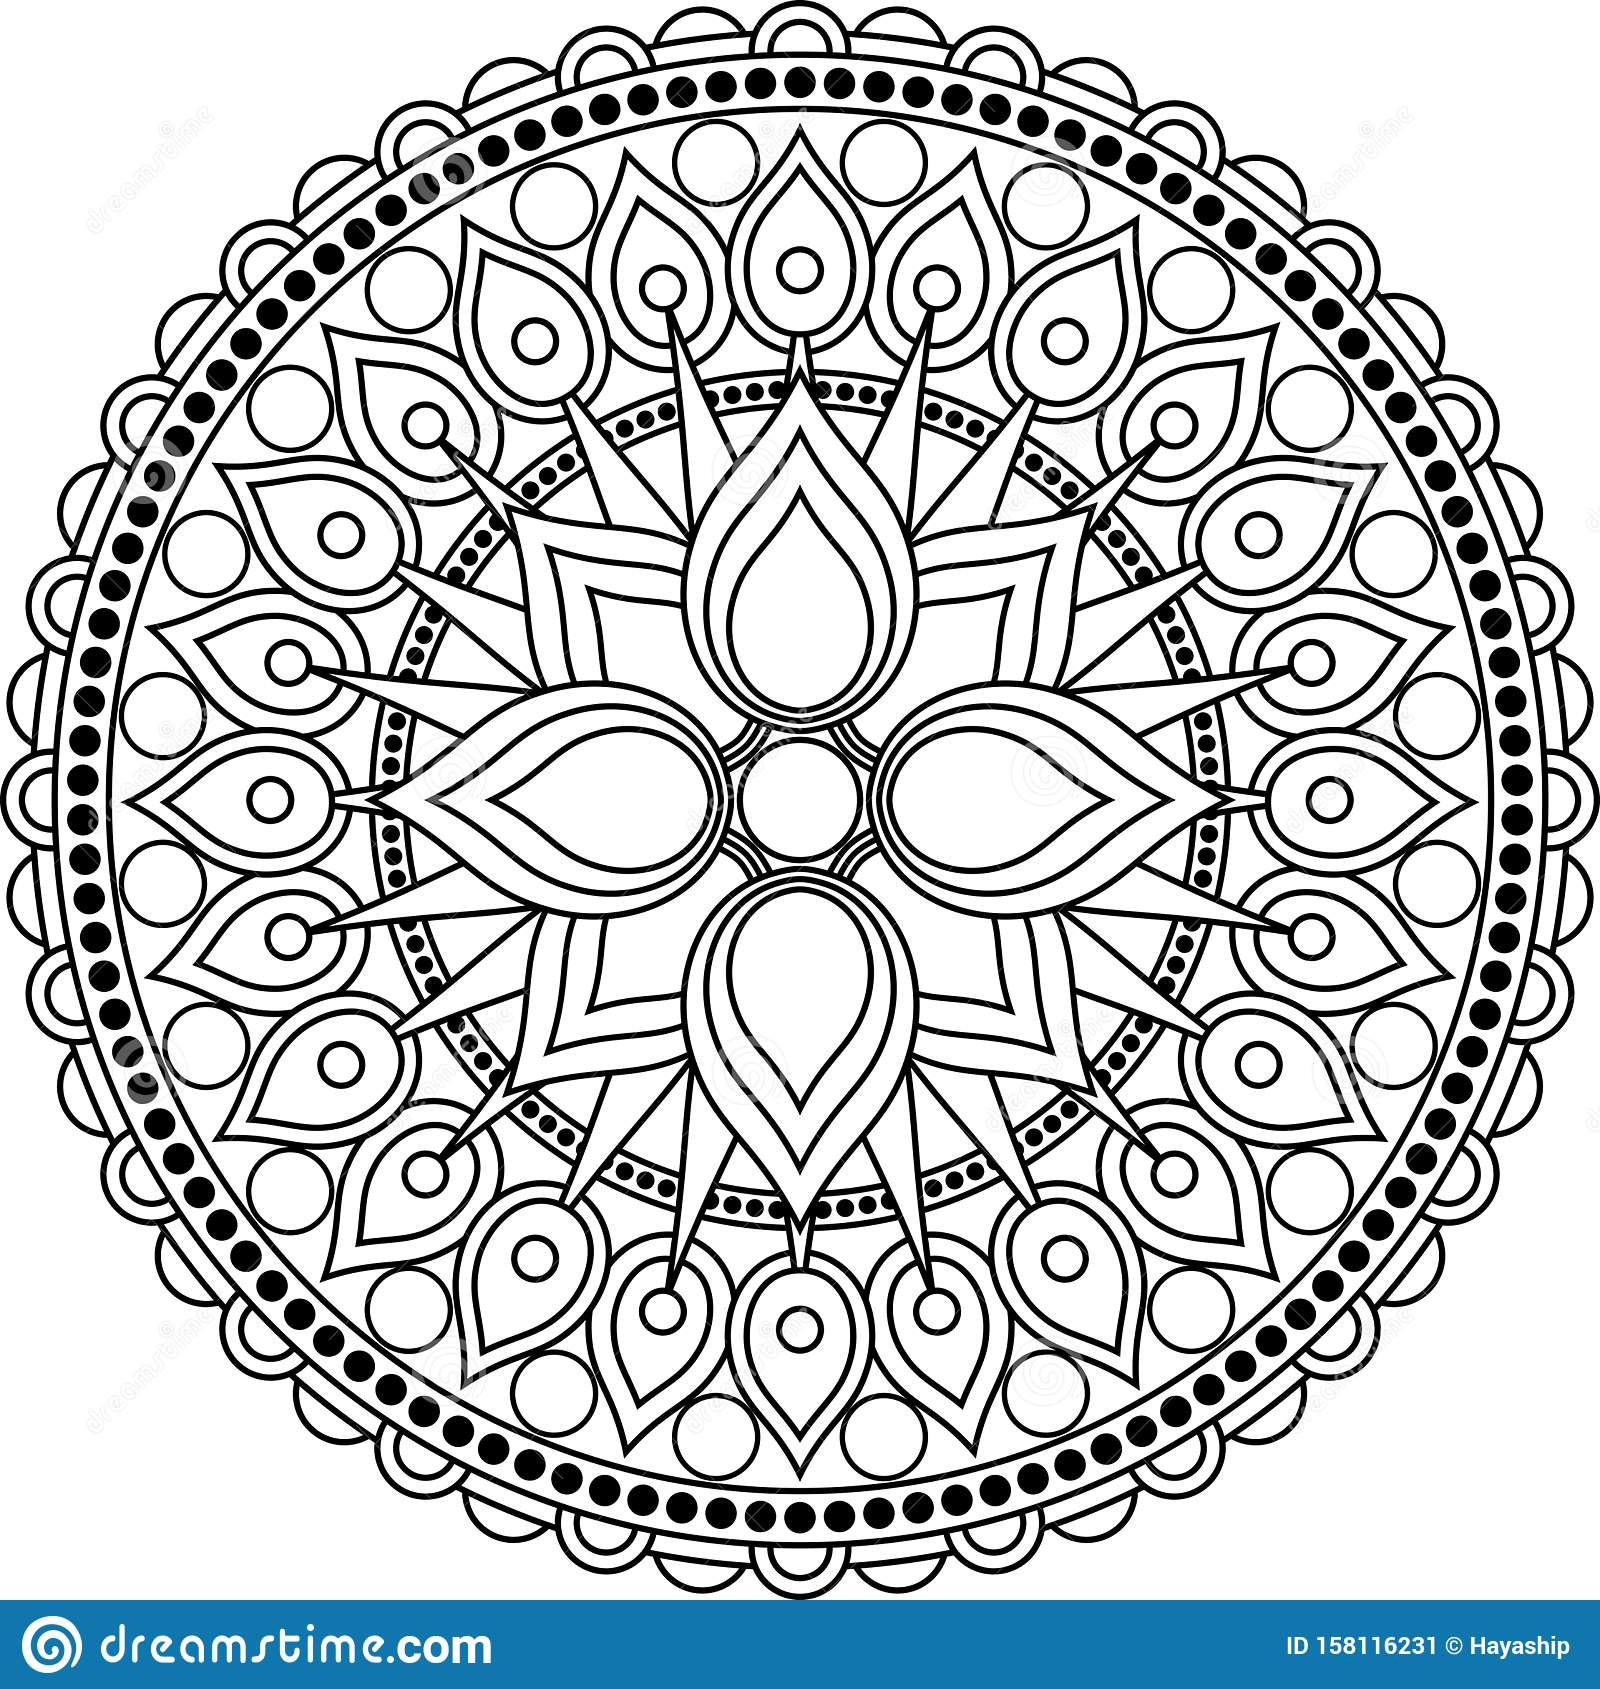 Mandala Art Therapy Coloring Page Stock Vector Illustration Of Graphic Blank 158116231